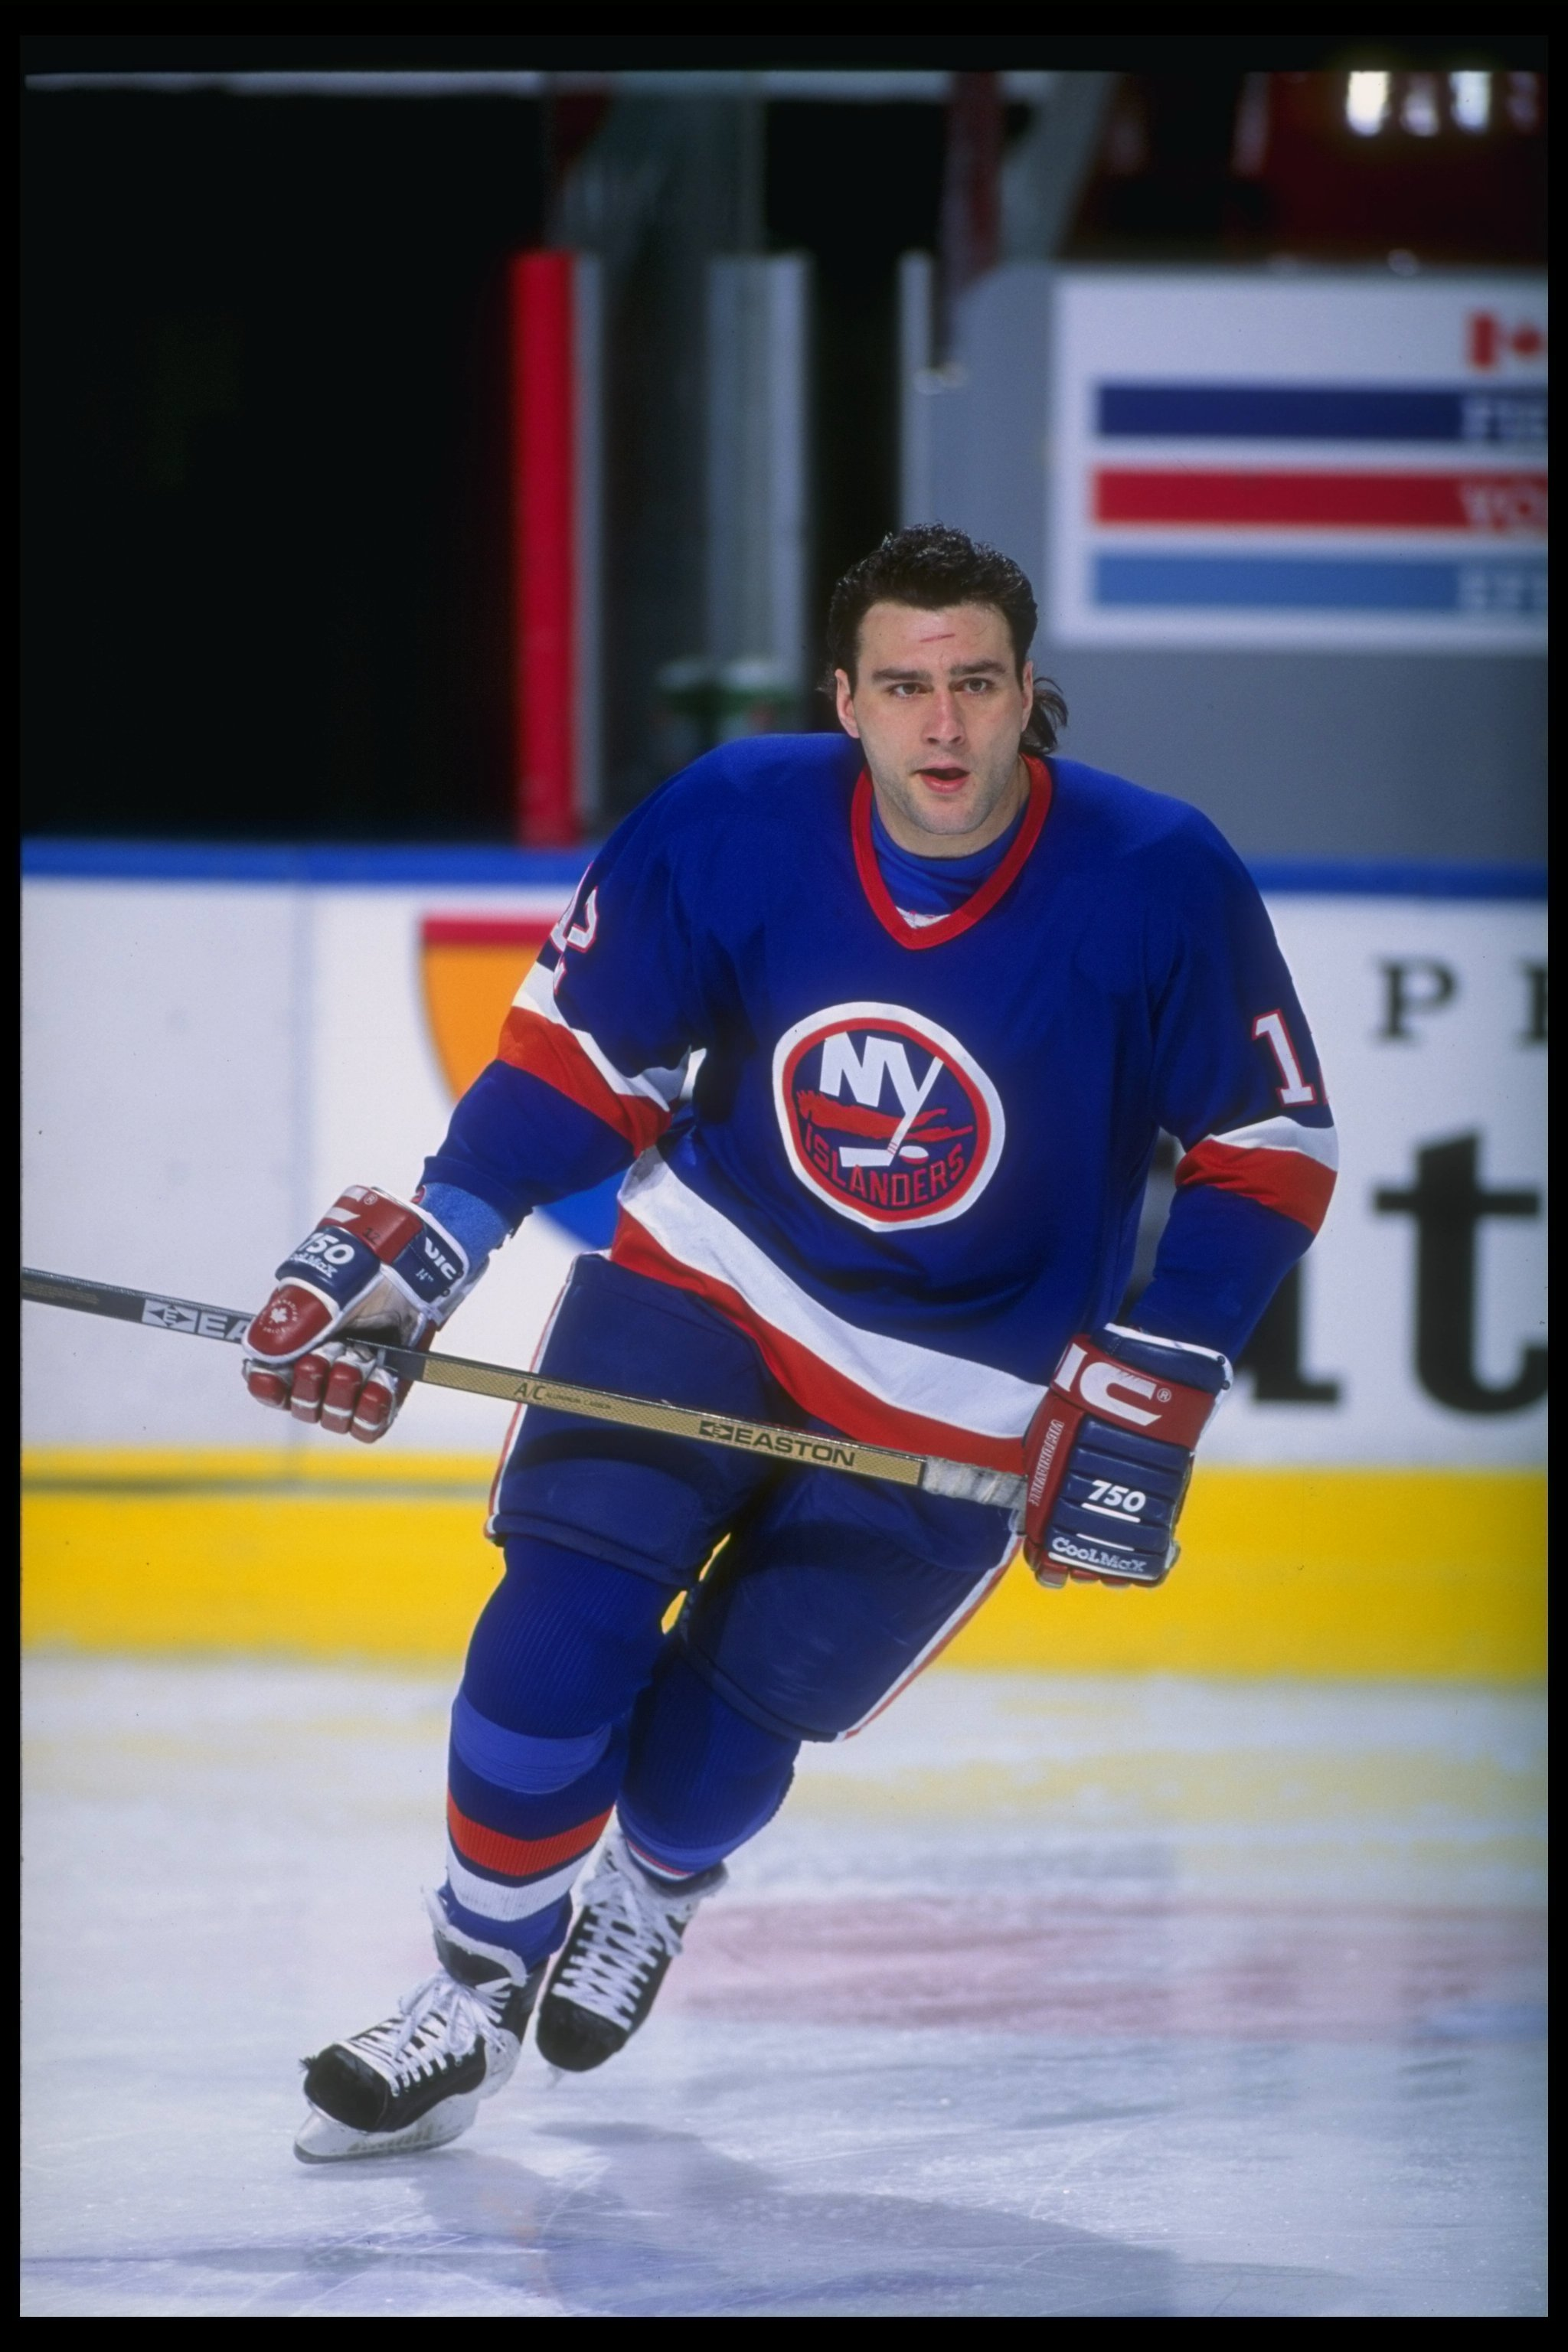 Rightwinger Marty McInnis of the New York Islanders moves down the ice during a game against the Quebec Nordiques at the Quebec Coliseum in Quebec City, Quebec.